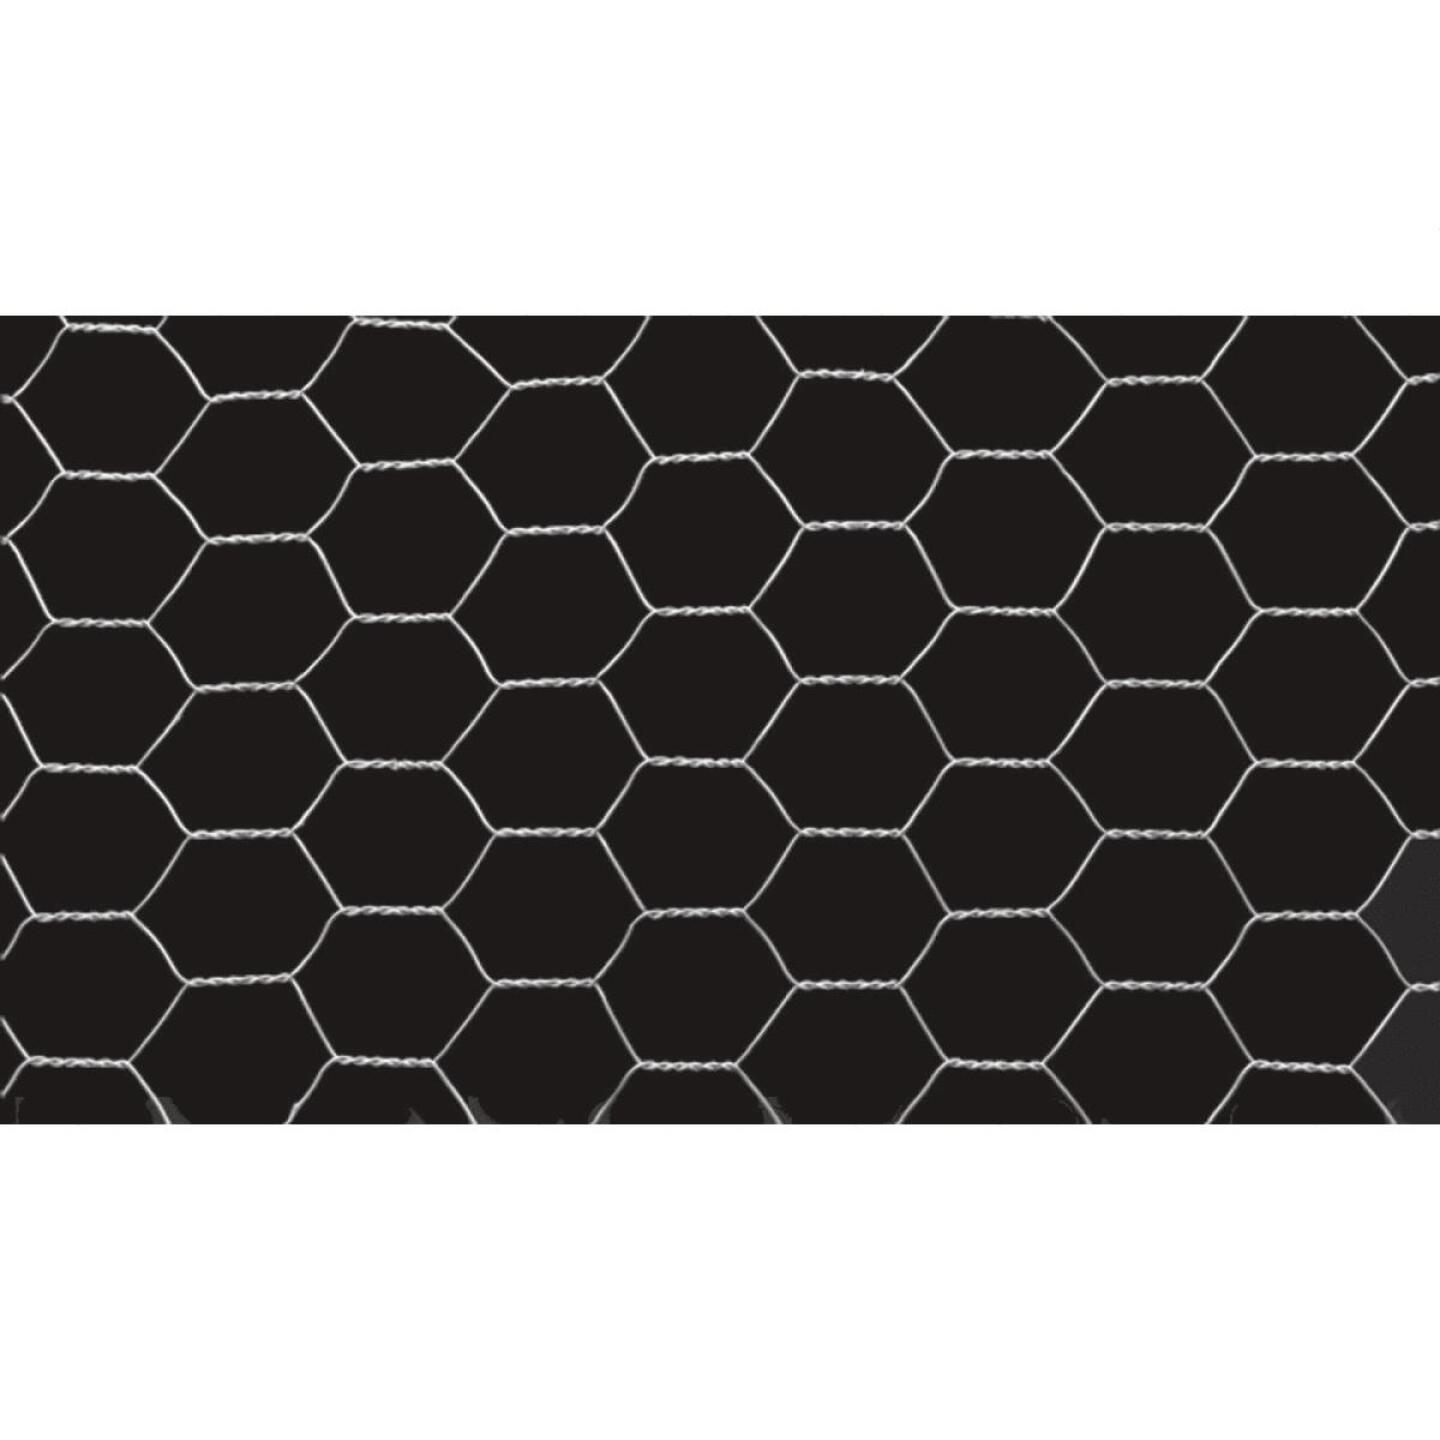 1/2 In. x 24 In. H. x 25 Ft. L. Hexagonal Wire Poultry Netting Image 4